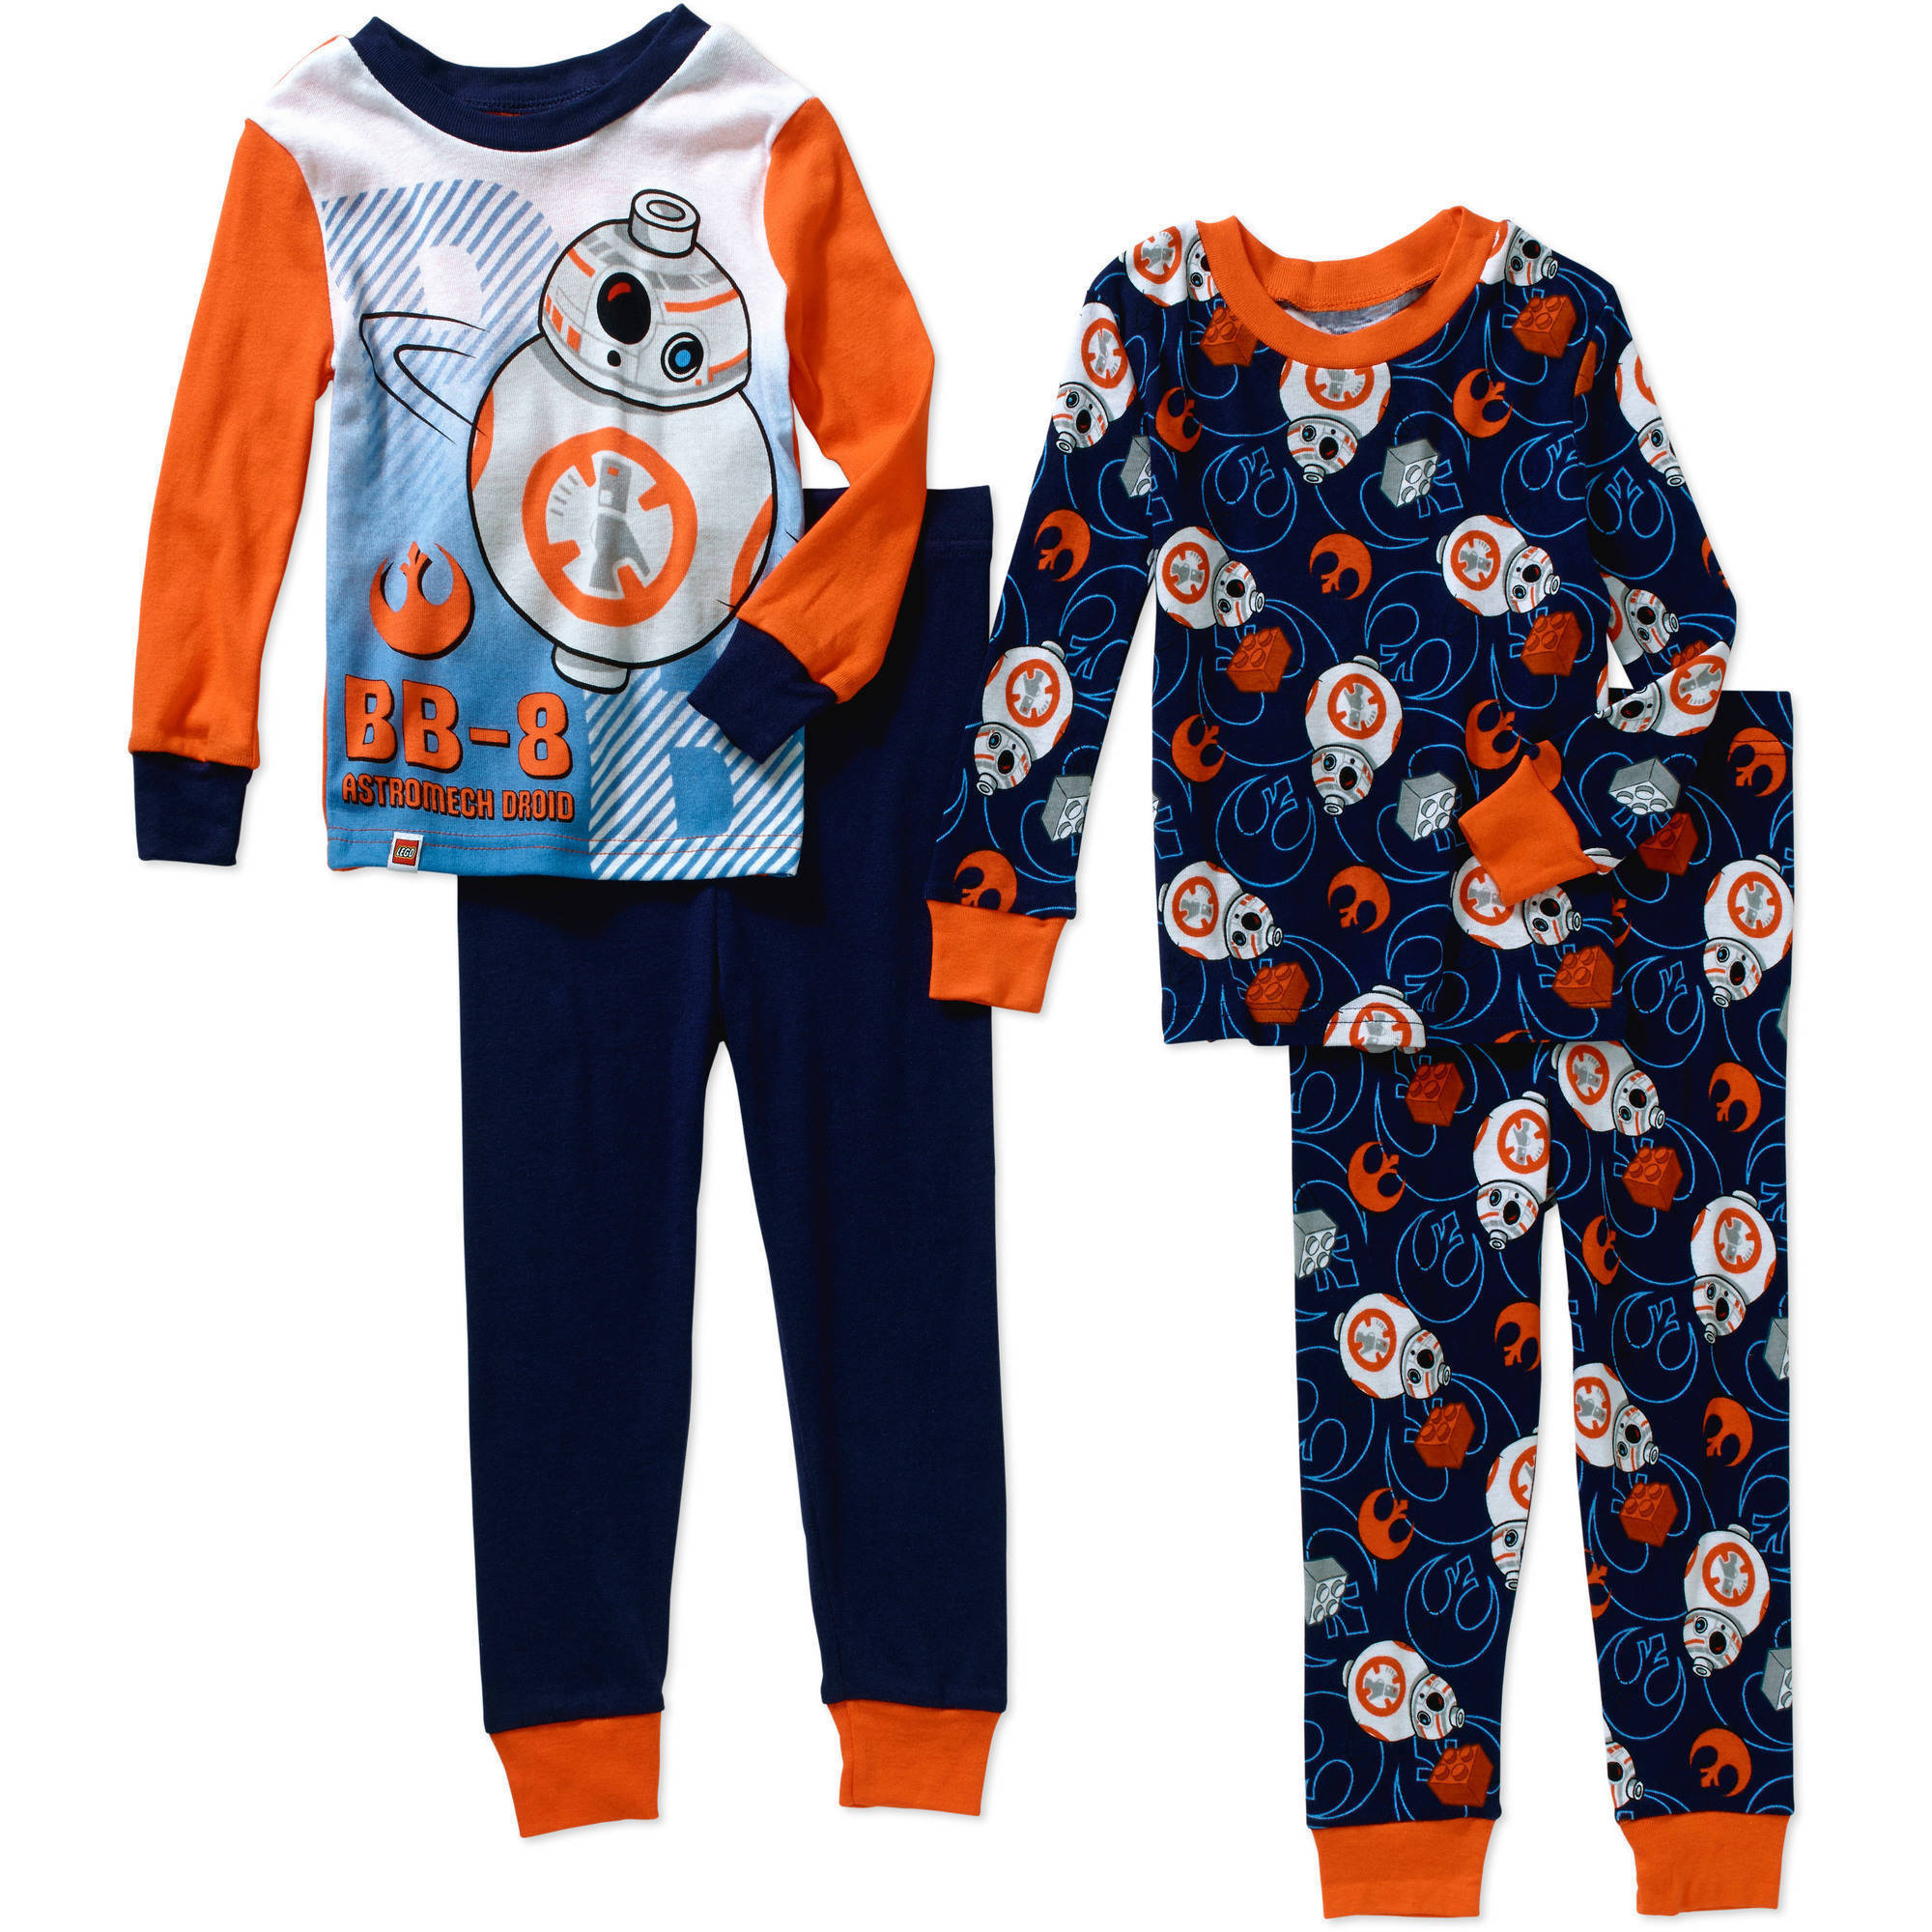 Boys' Licensed Glow in the Dark 4 Piece Cotton Pajama Sleepwear Set, Available in 4 Characters